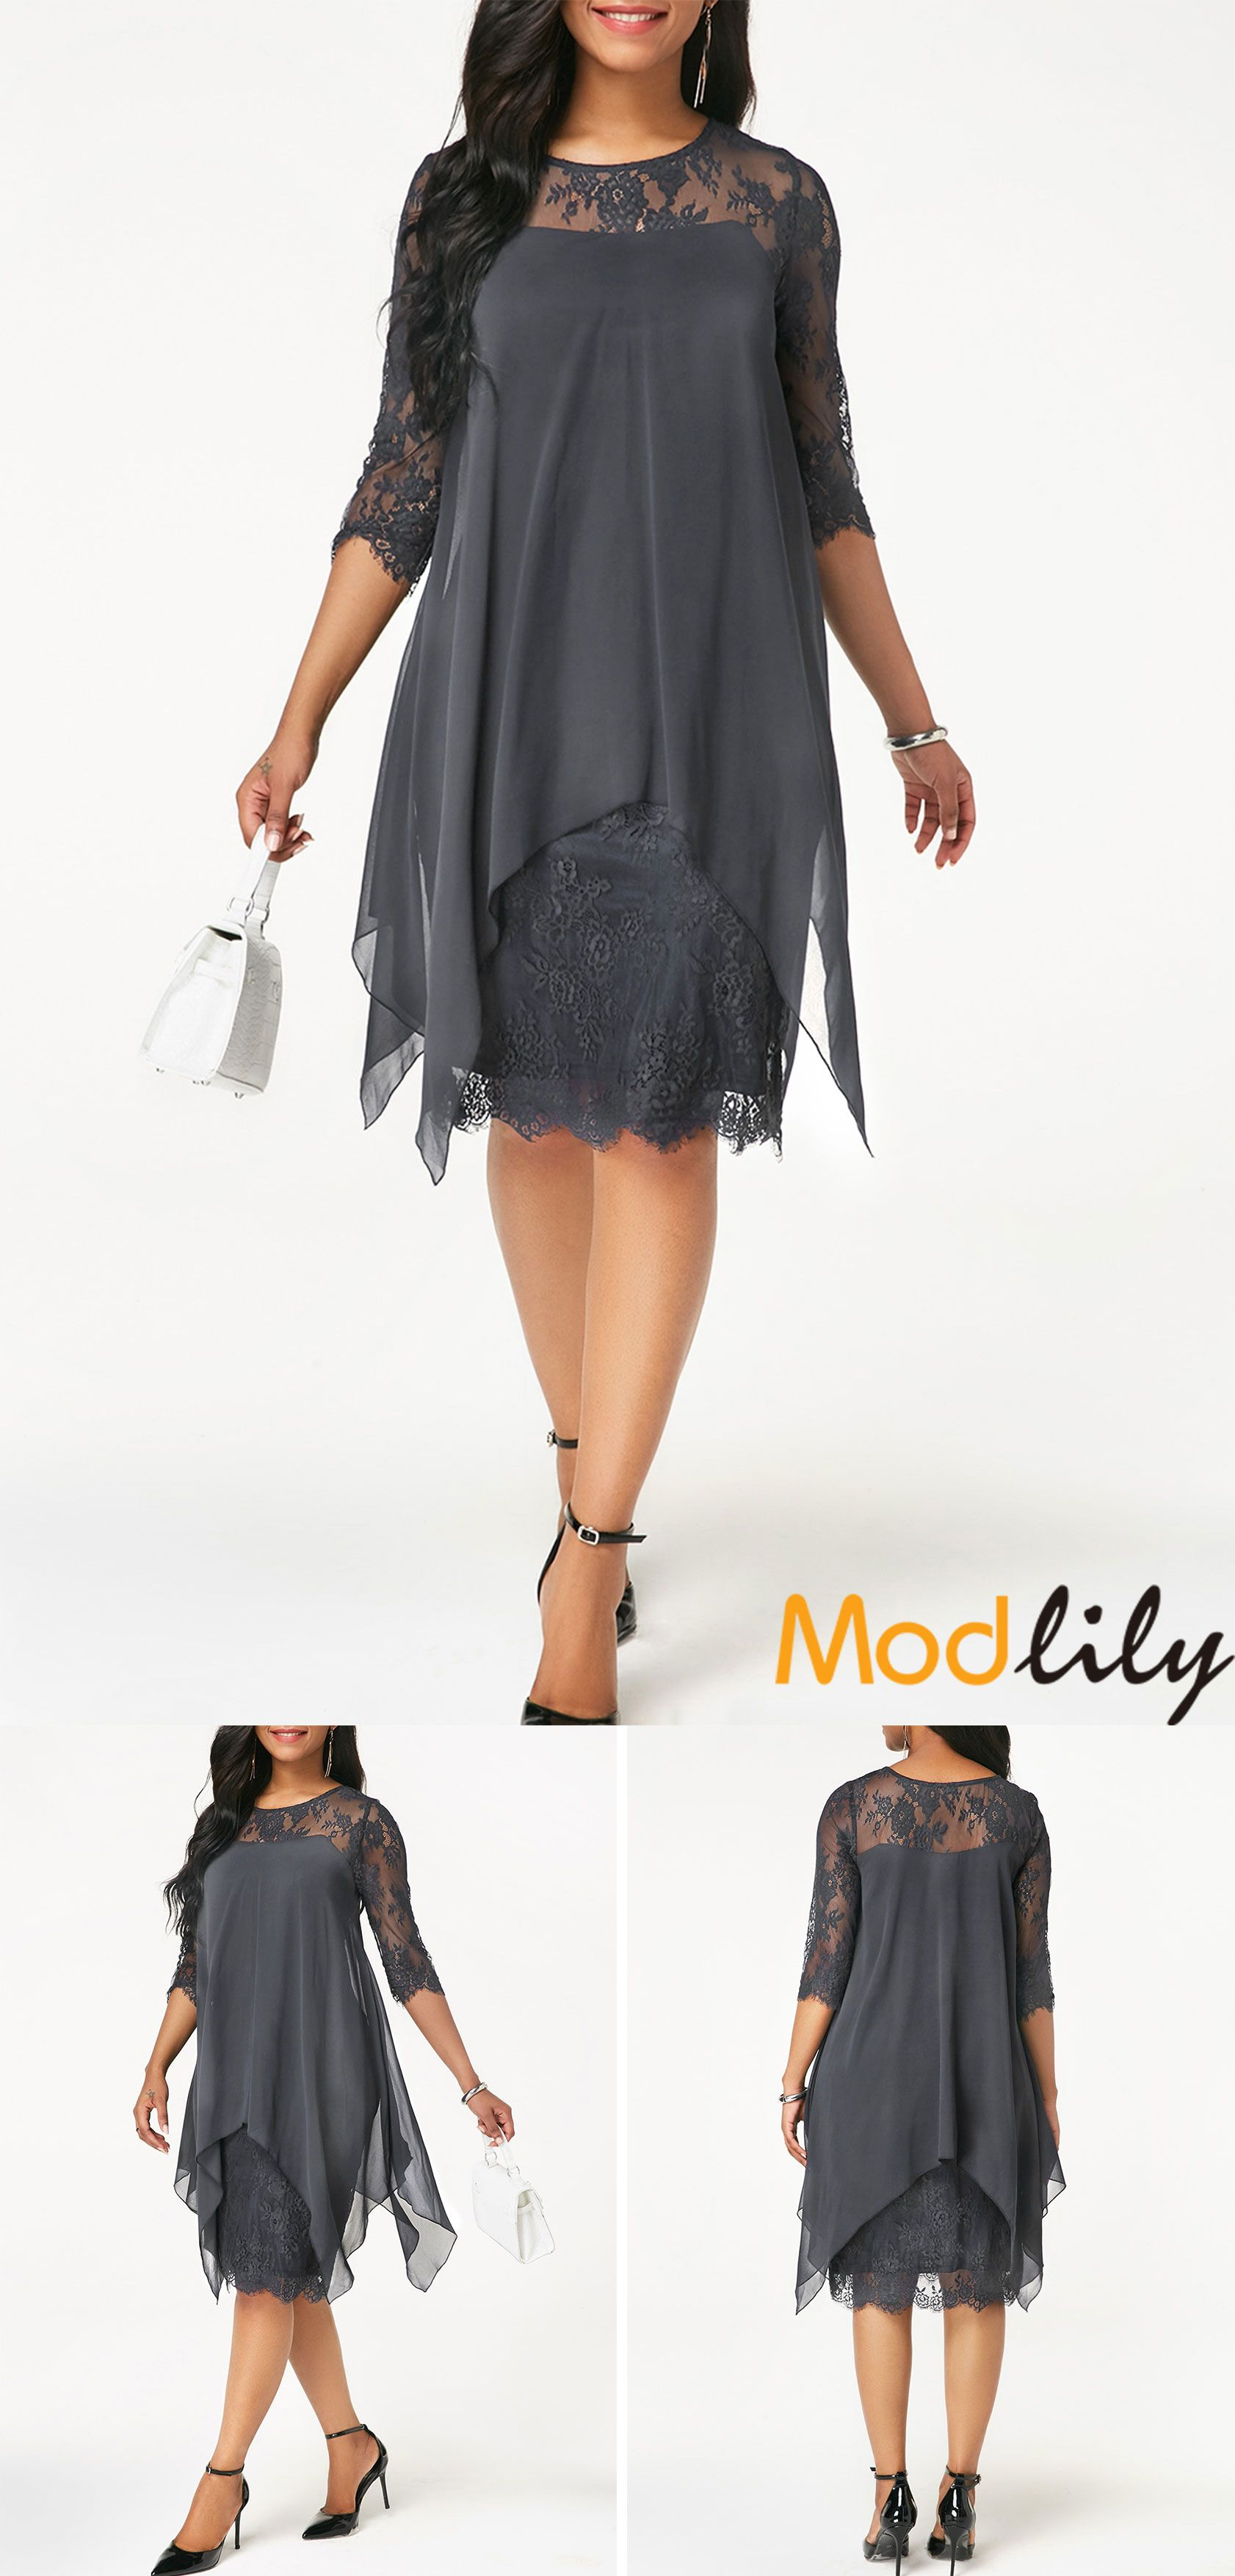 2b50e745de Round Neck Chiffon Overlay Lace Dress On Sale At Modlily. Free ...